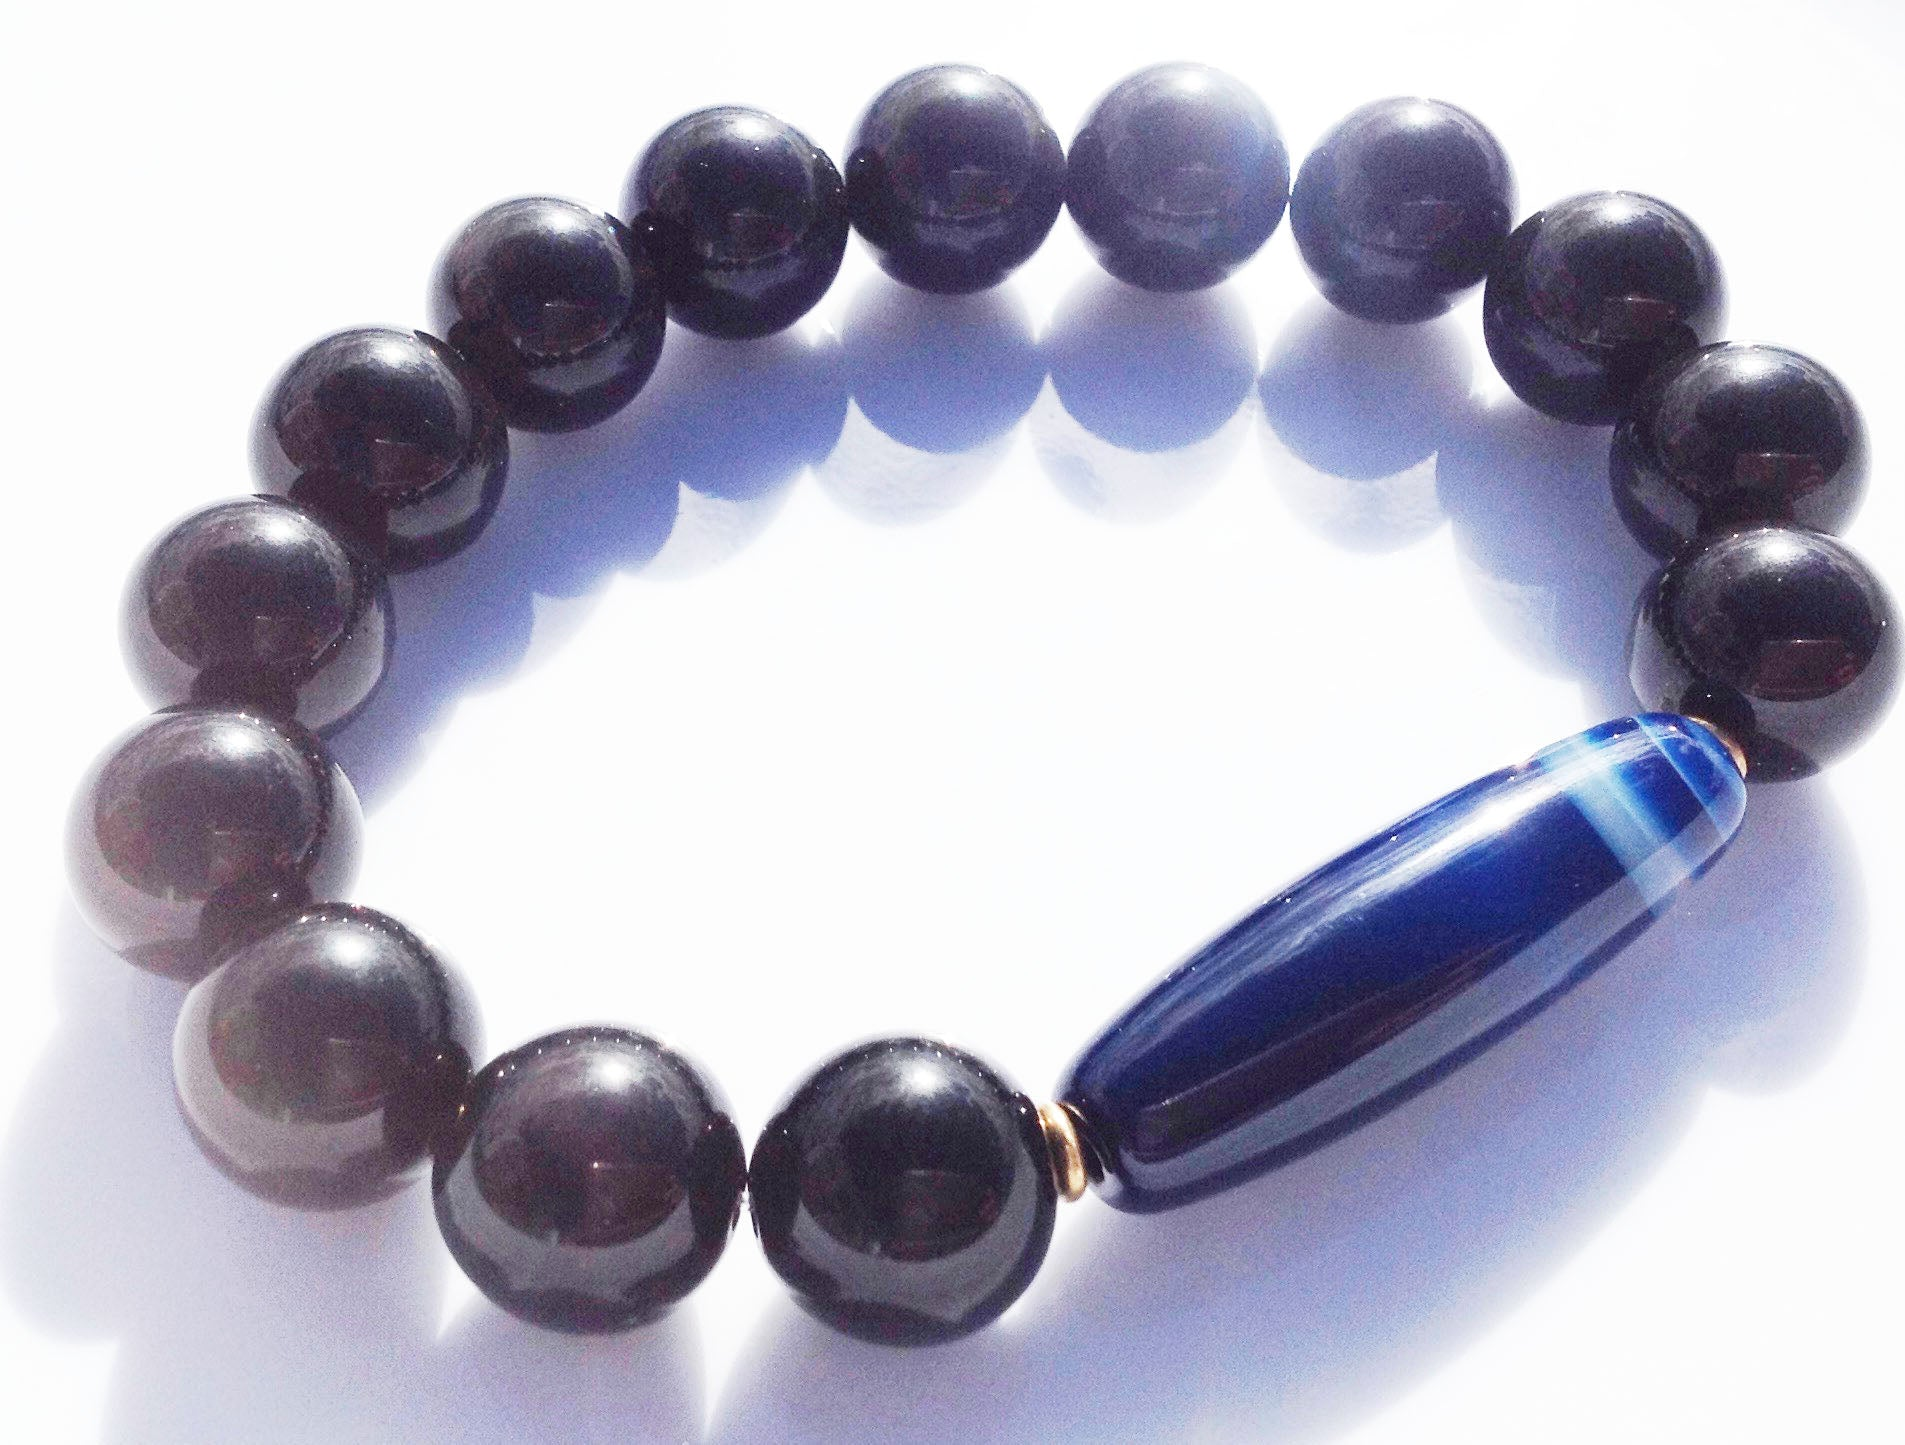 Ancient Dzi Bead Collection Black Obsidian Yoga Meditation Wrist Mala Bracelet Root Base Chakra Healing Energy Reiki Grounding Mindful